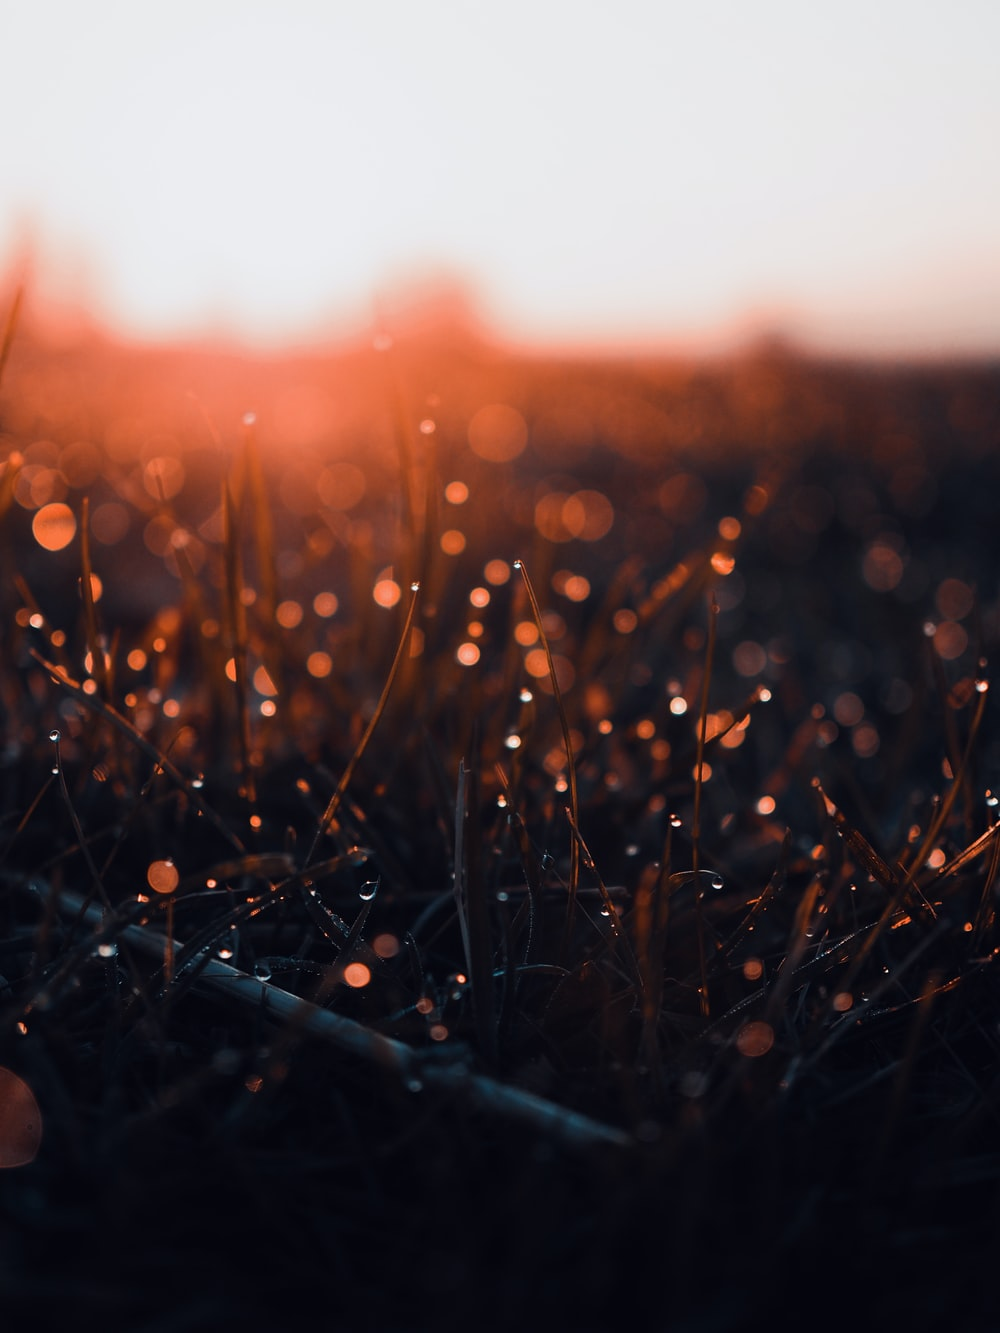 water droplets on grass during sunset